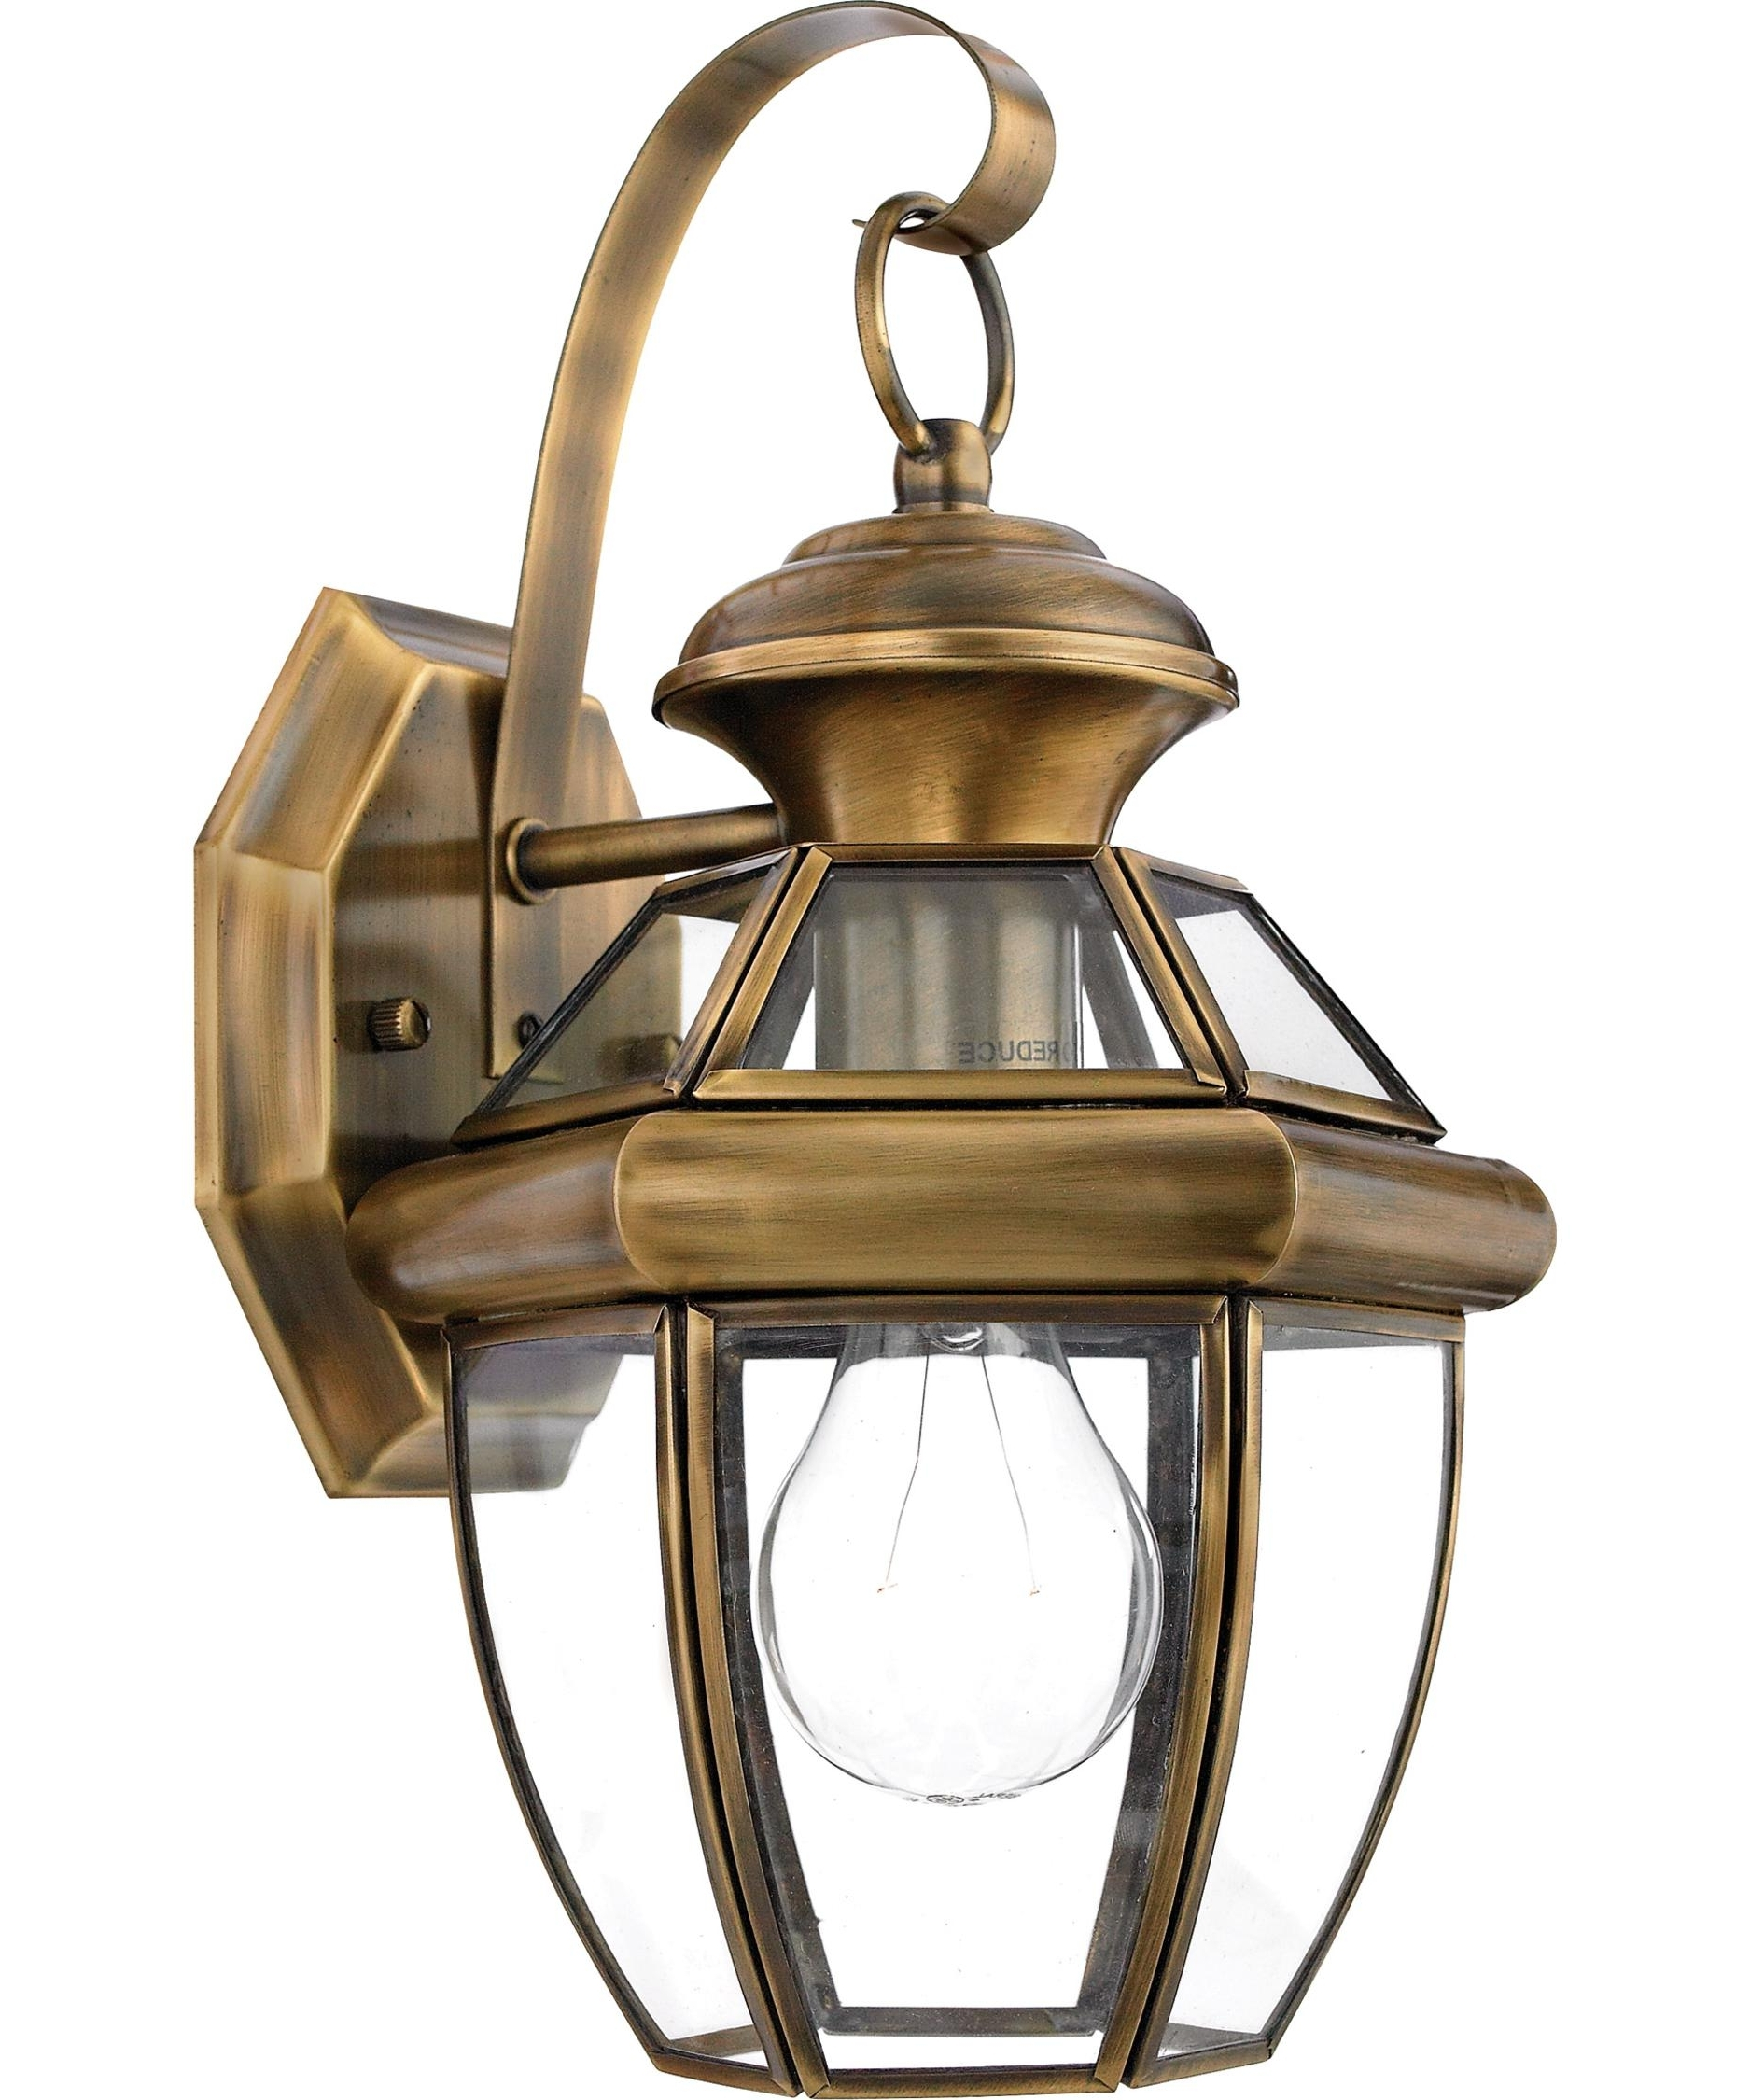 Awesome Decorative Outdoor Motion Sensor Light – Indoor Motion Regarding Well Known Motion Sensor Outdoor Hanging Lights (View 2 of 20)